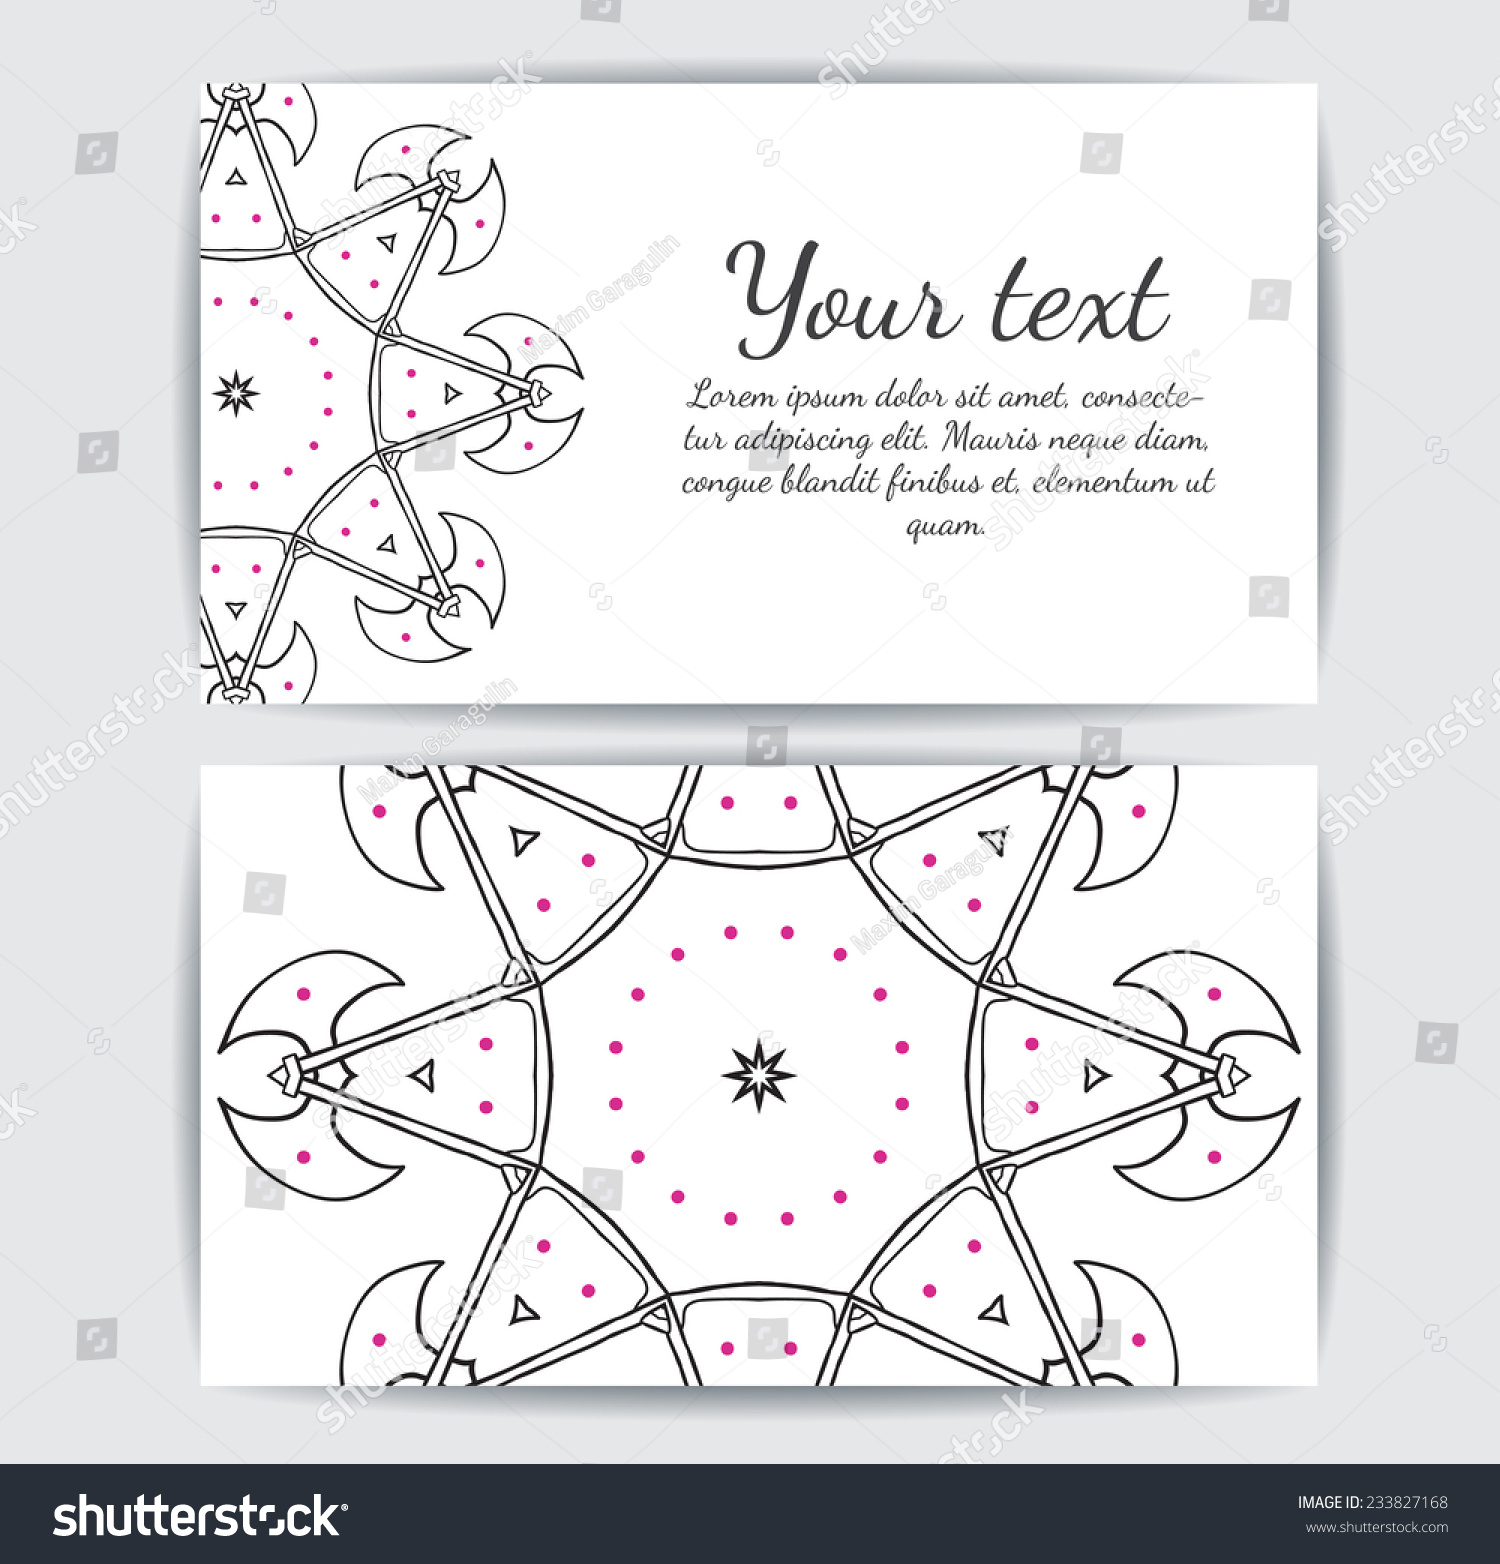 Invitation Business Card Banner Text Template Stock Photo (Photo ...